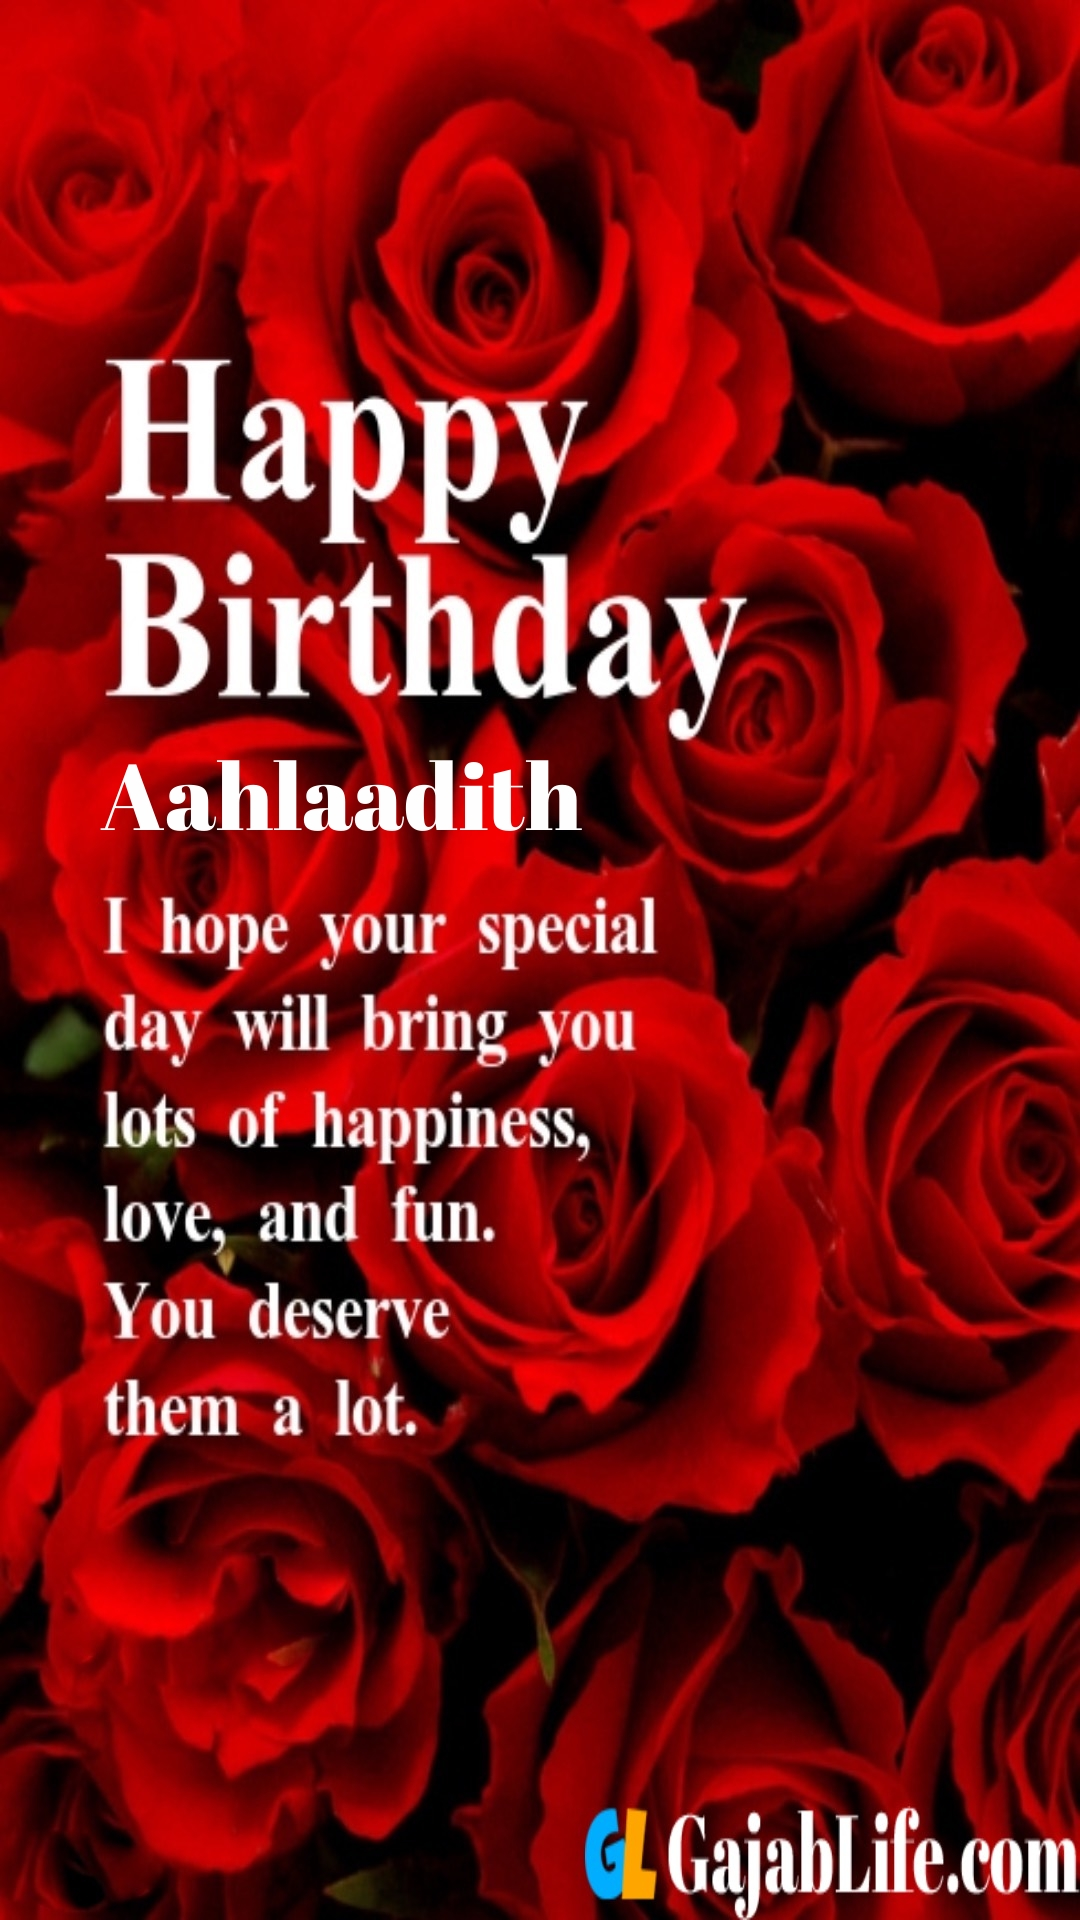 Aahlaadith birthday greeting card with rose & love